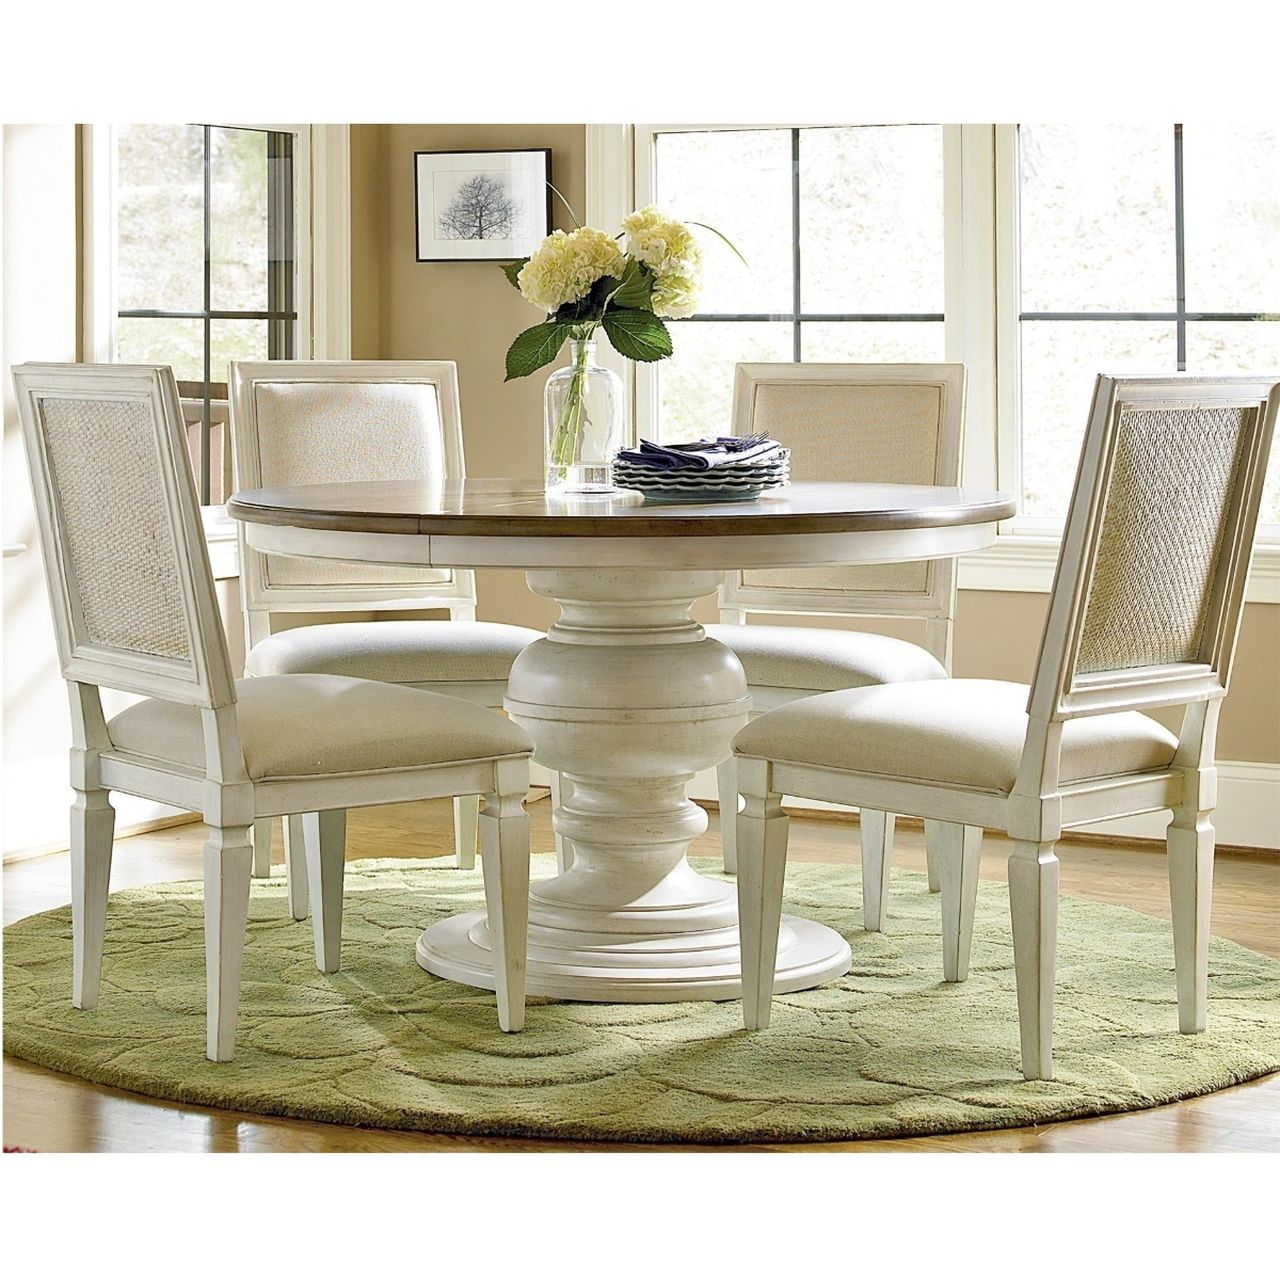 Country-Chic 5 Piece Round White Dining Room Set in 2020 ...